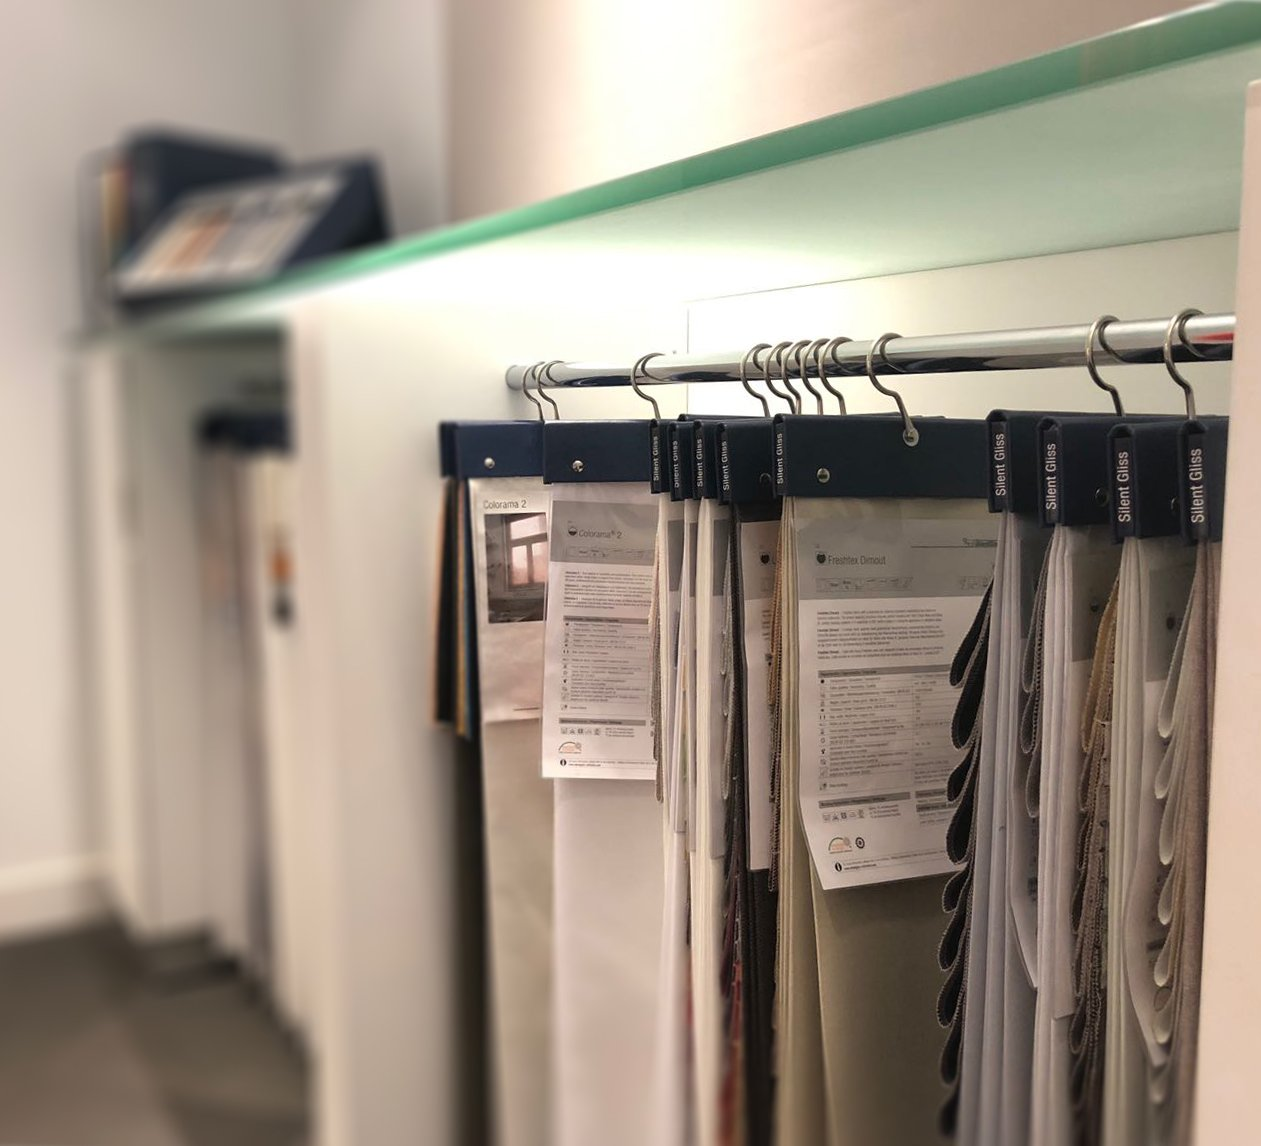 Silent Gliss Business Centre London - Fabric hangers